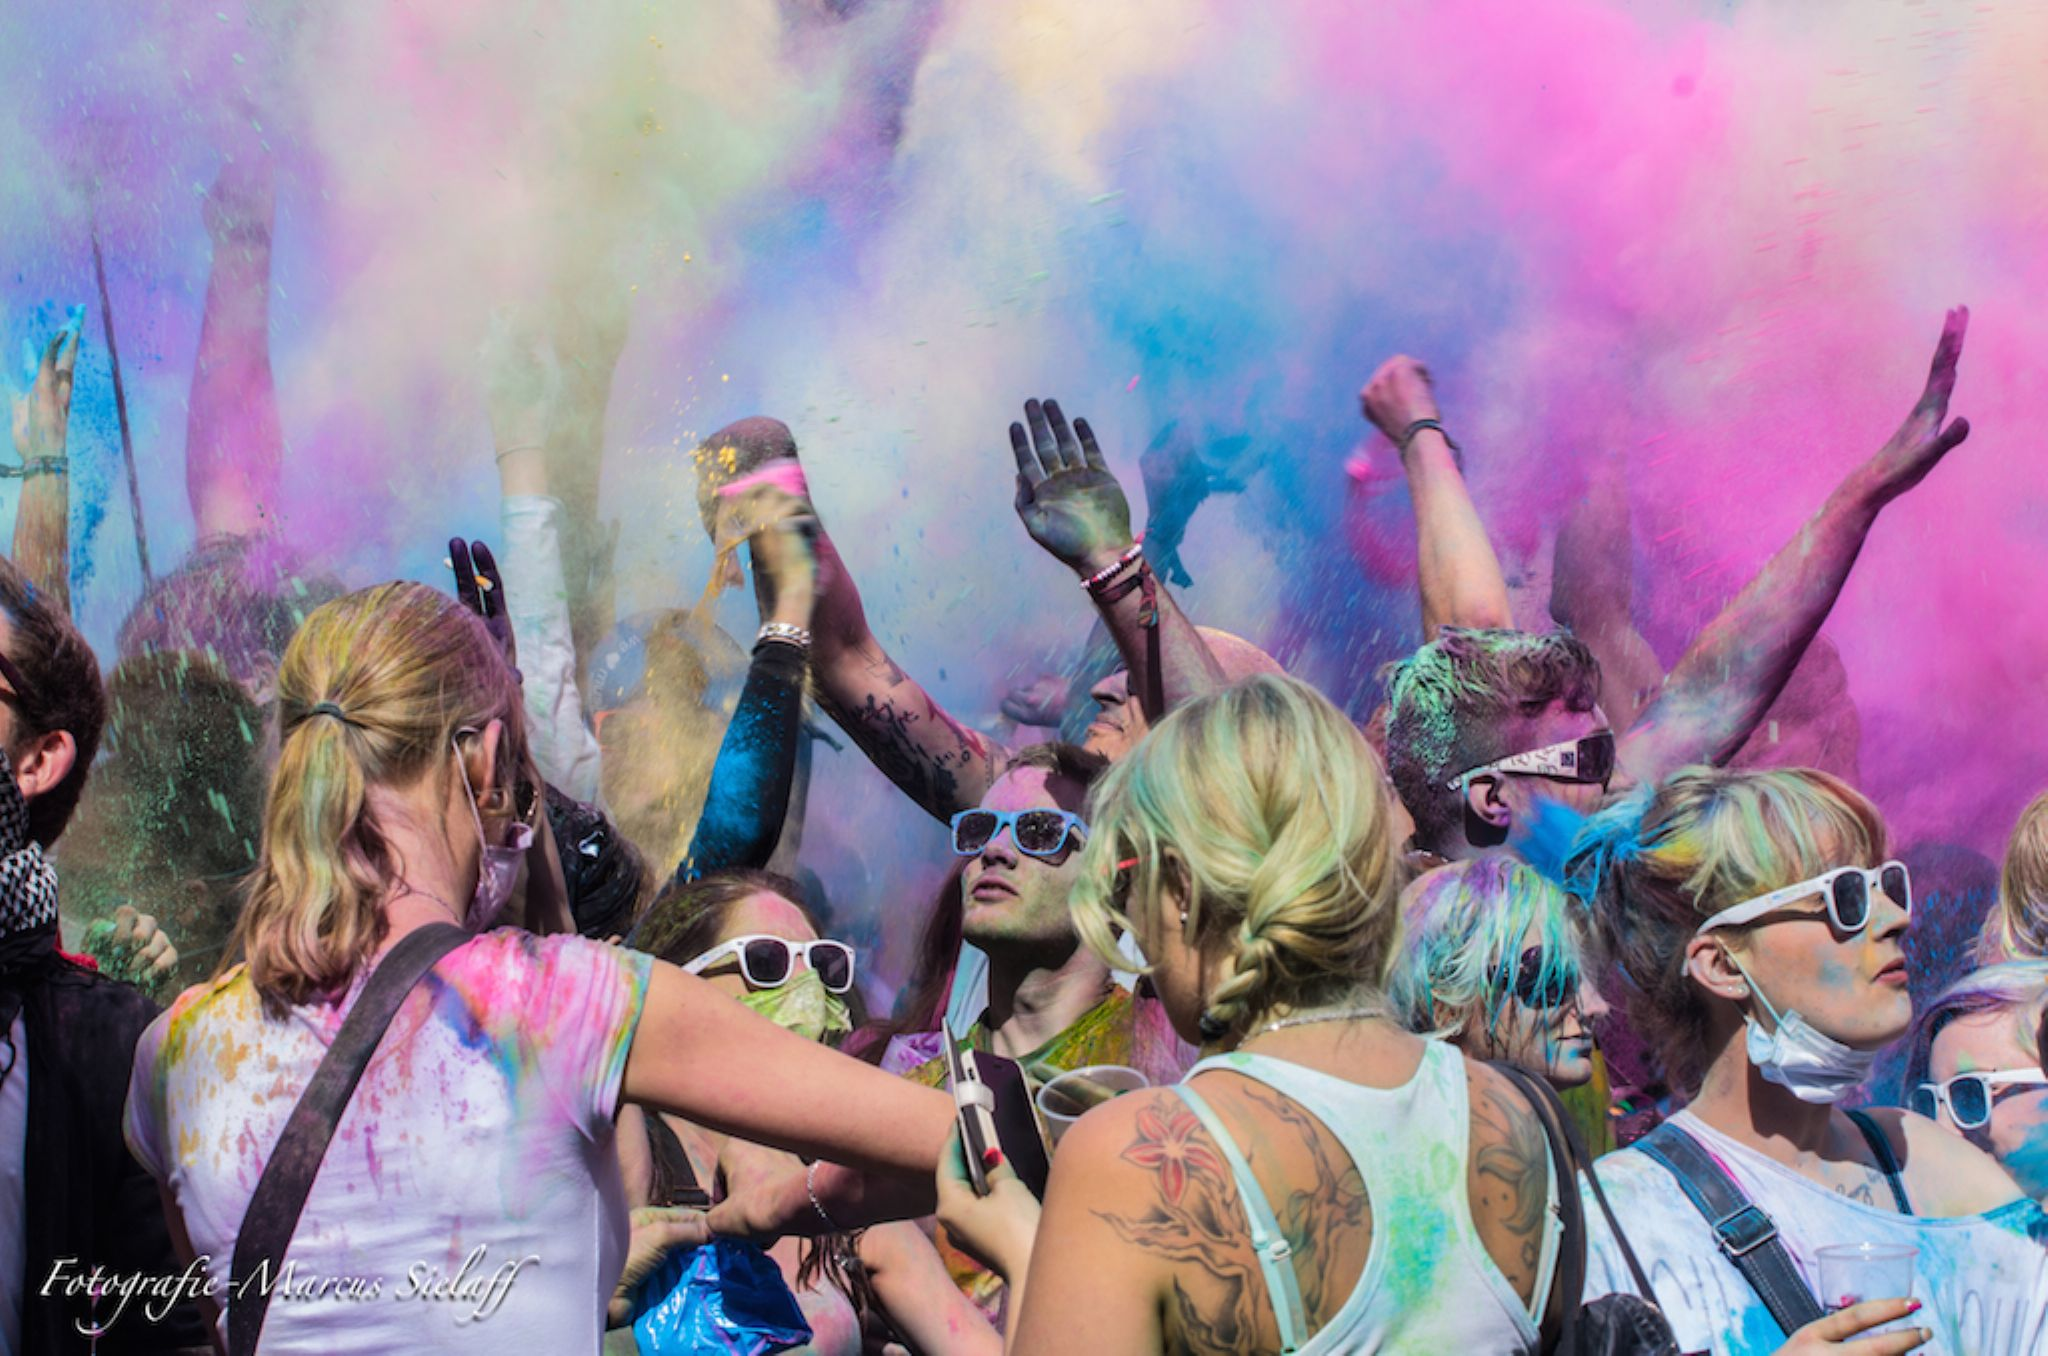 Holifestival 2014 in Berlin by Marcus Sielaff